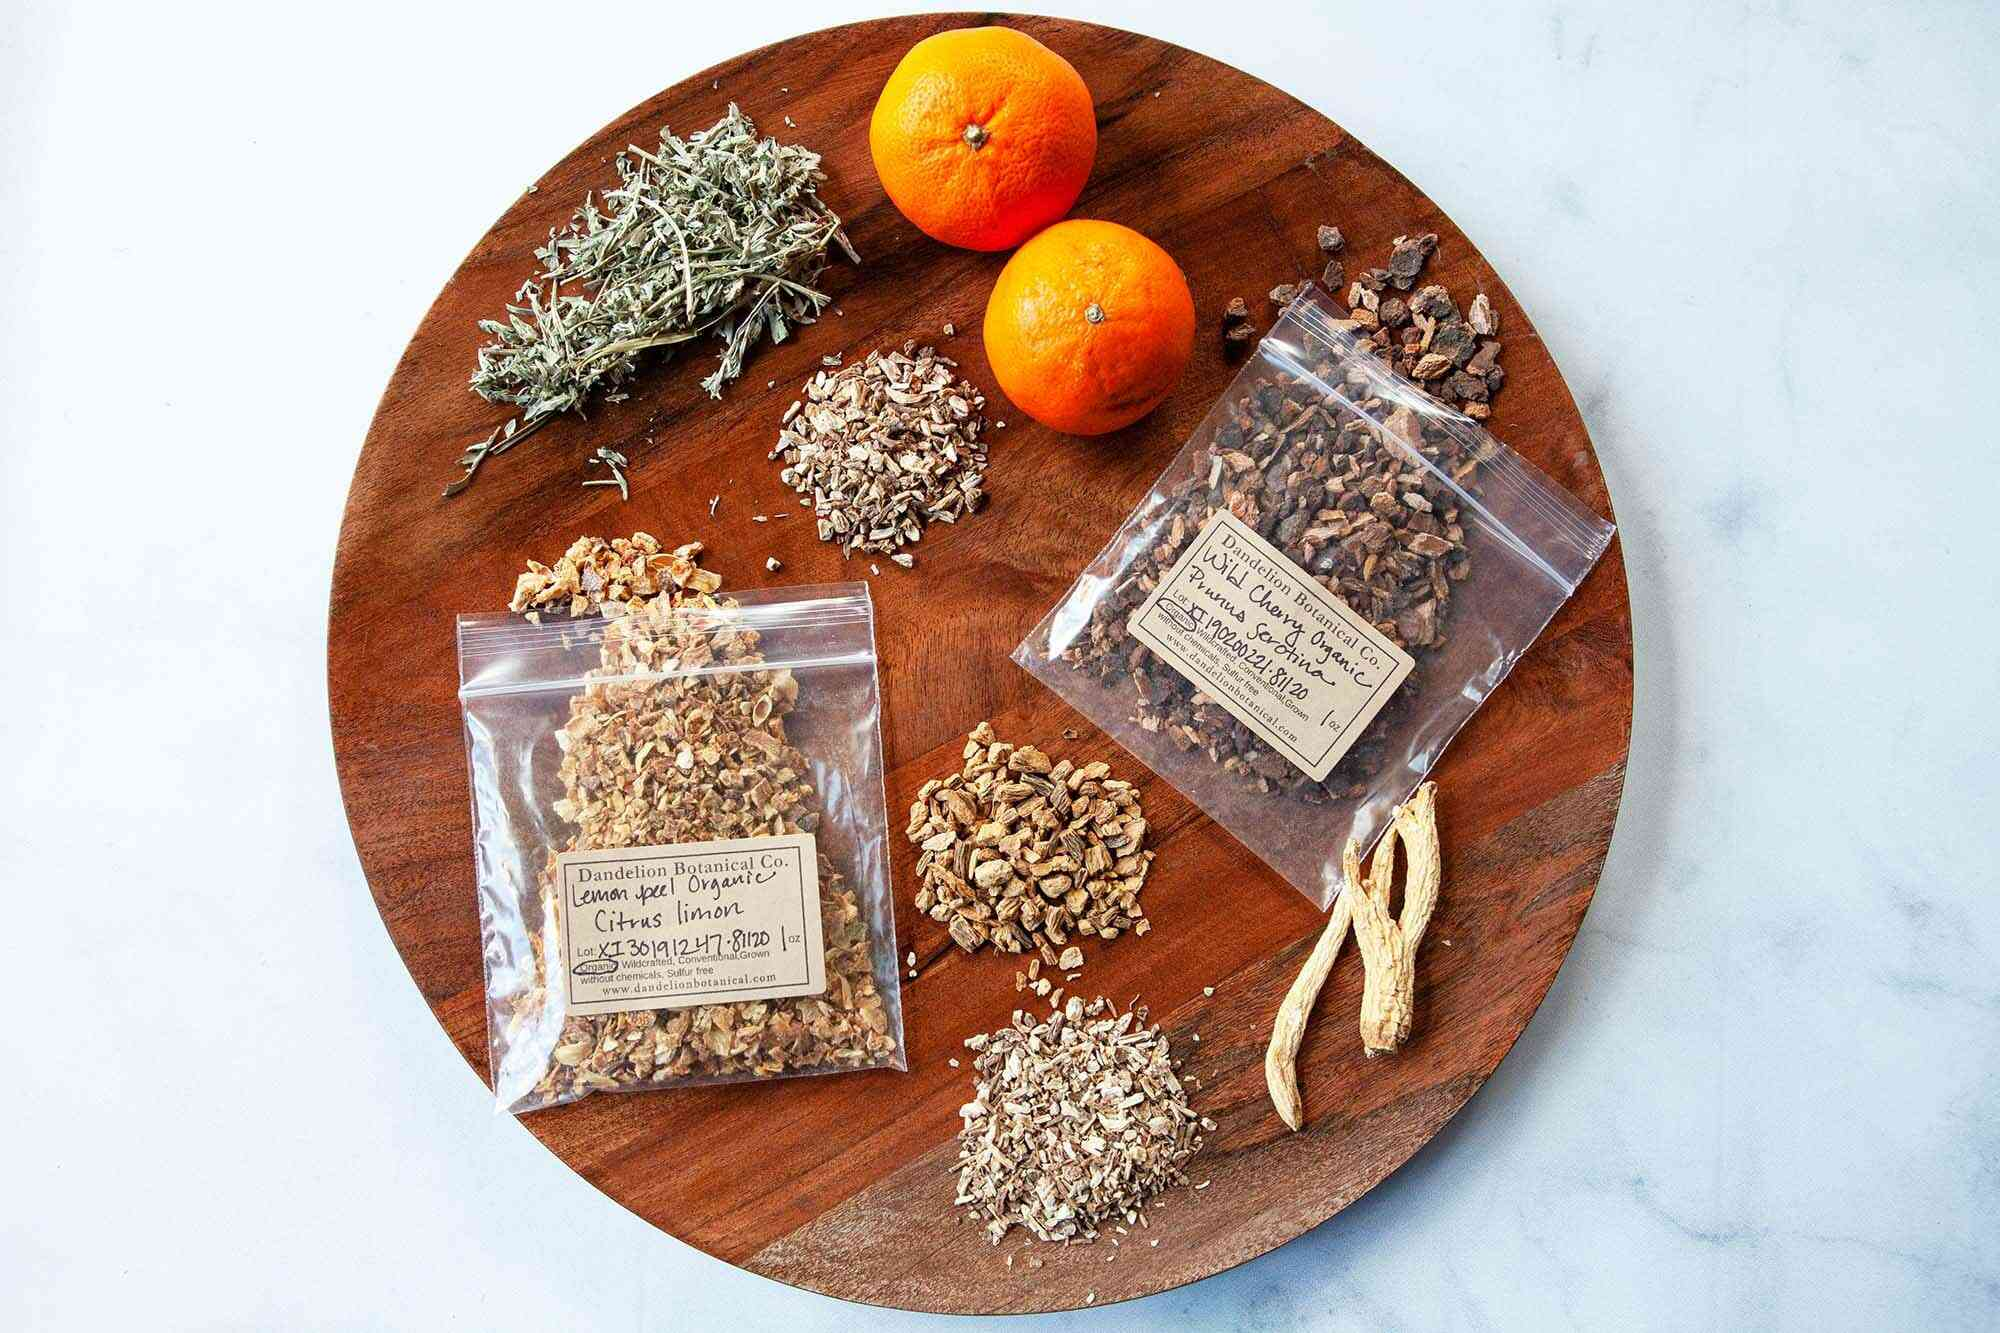 A round tray with spices, herbs and oranges set around it to make Campari.